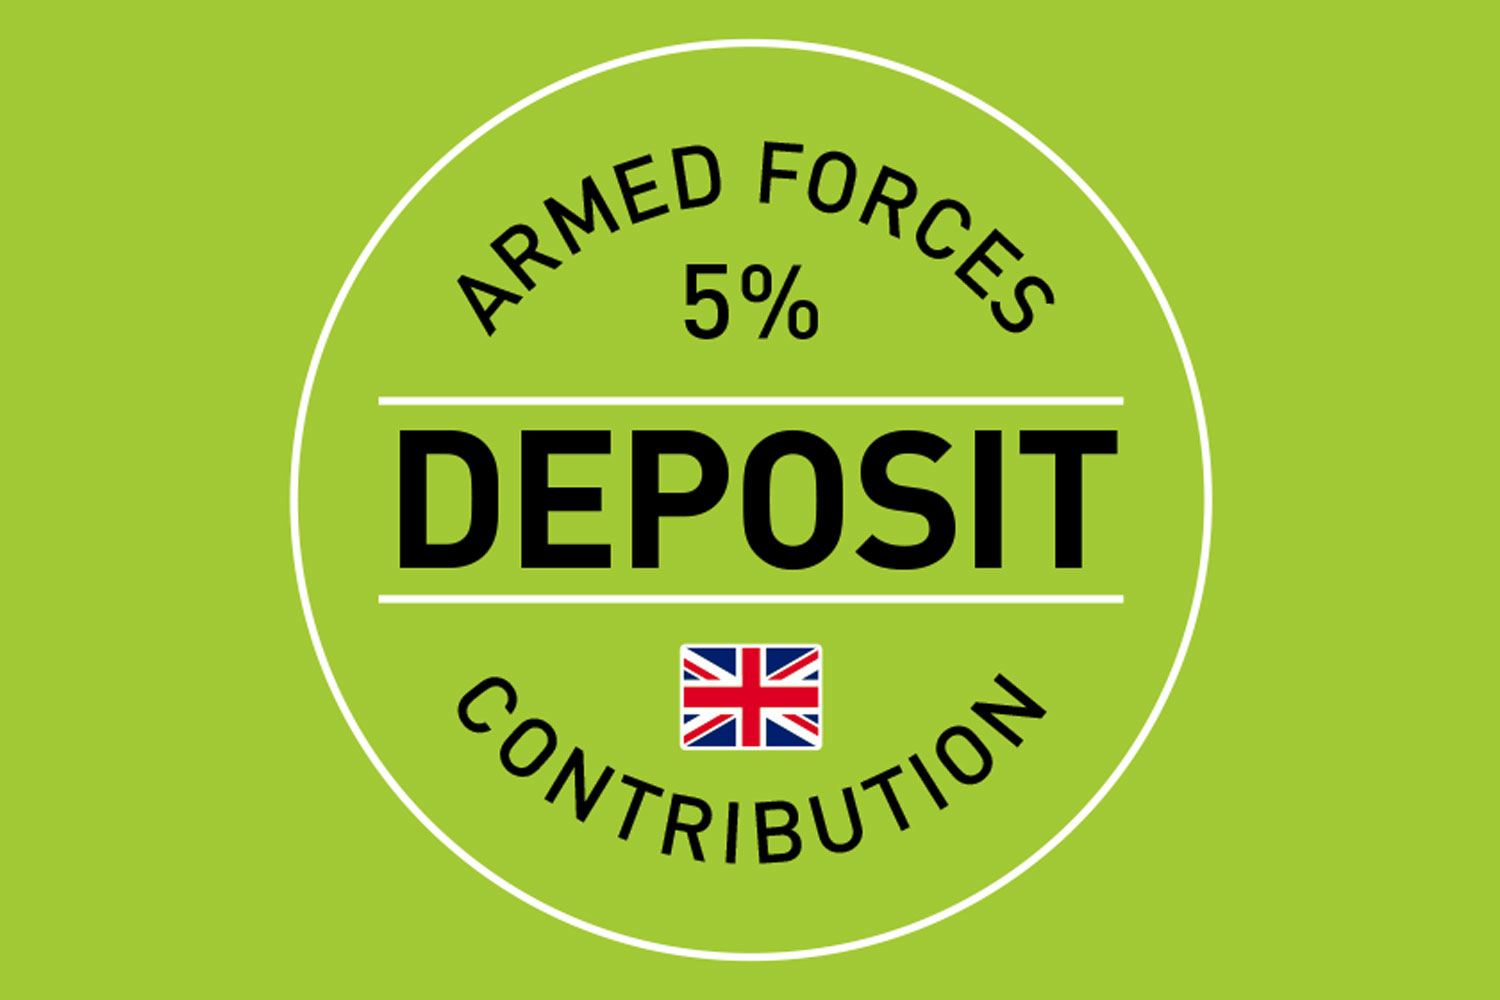 Armed Forces 5% deposit contribution